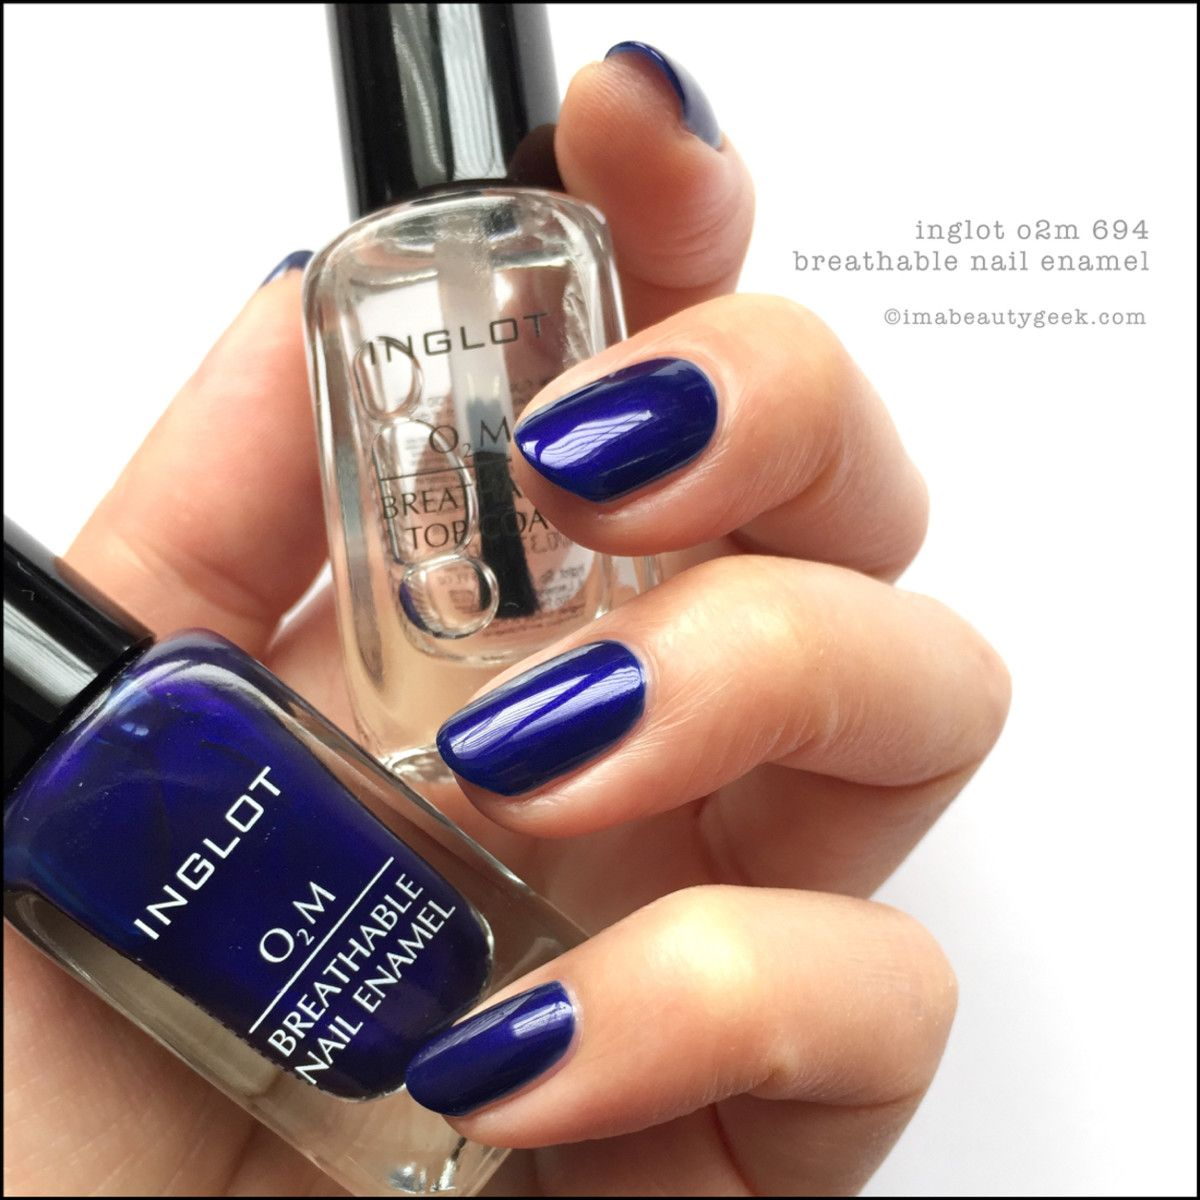 INGLOT O2M BREATHABLE NAIL ENAMEL SWATCHES & REVIEW | Swatch